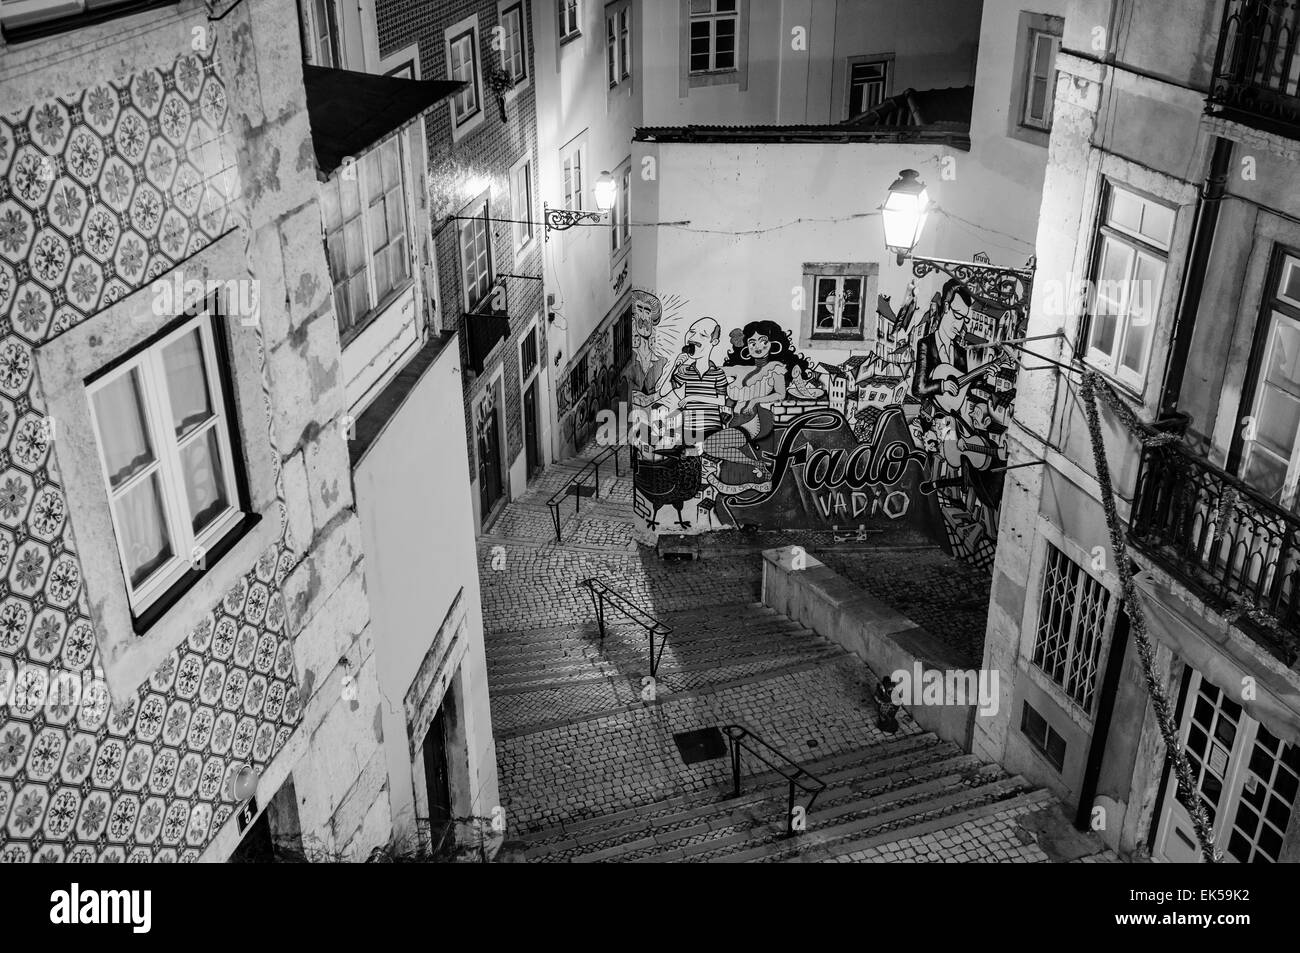 Portugal, Lisbon, Alfama area, view of a small street and a Fado mural at night - Stock Image